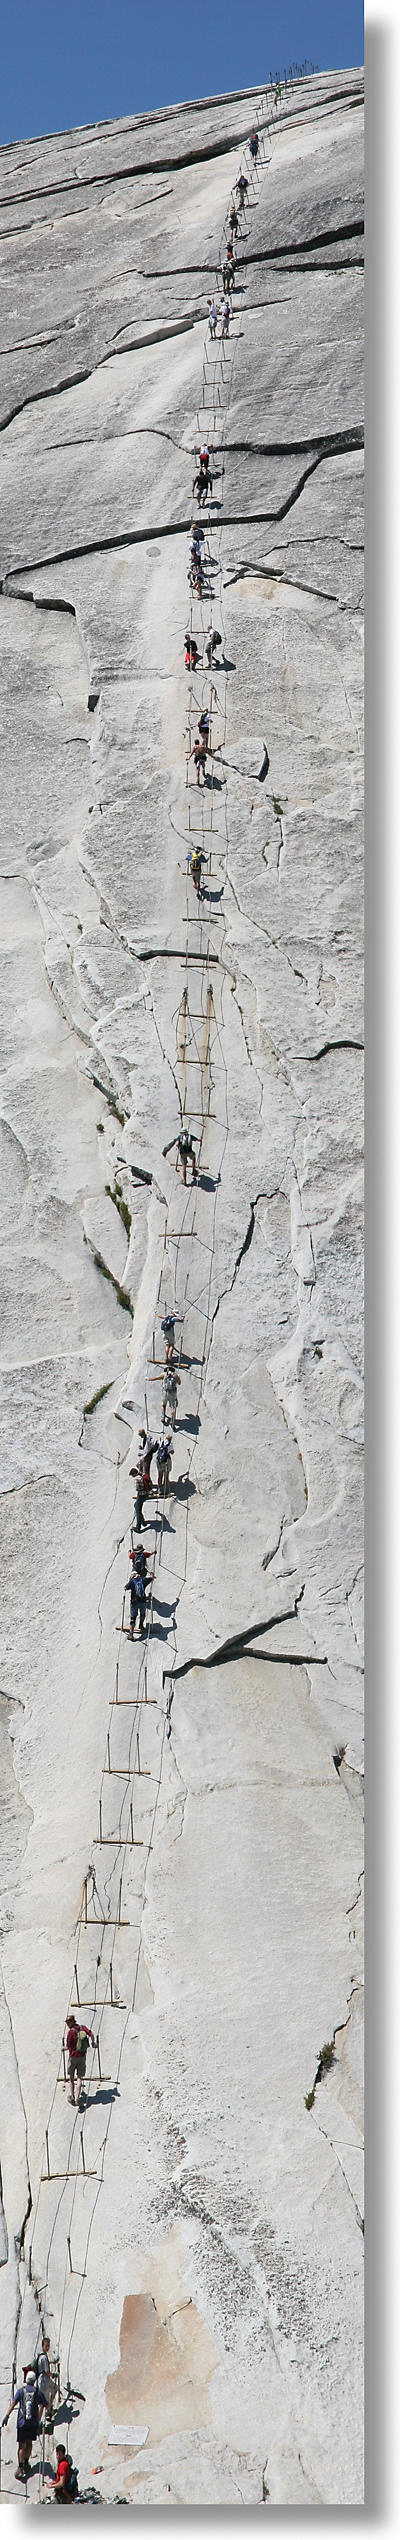 The Half Dome cables, from top to bottom